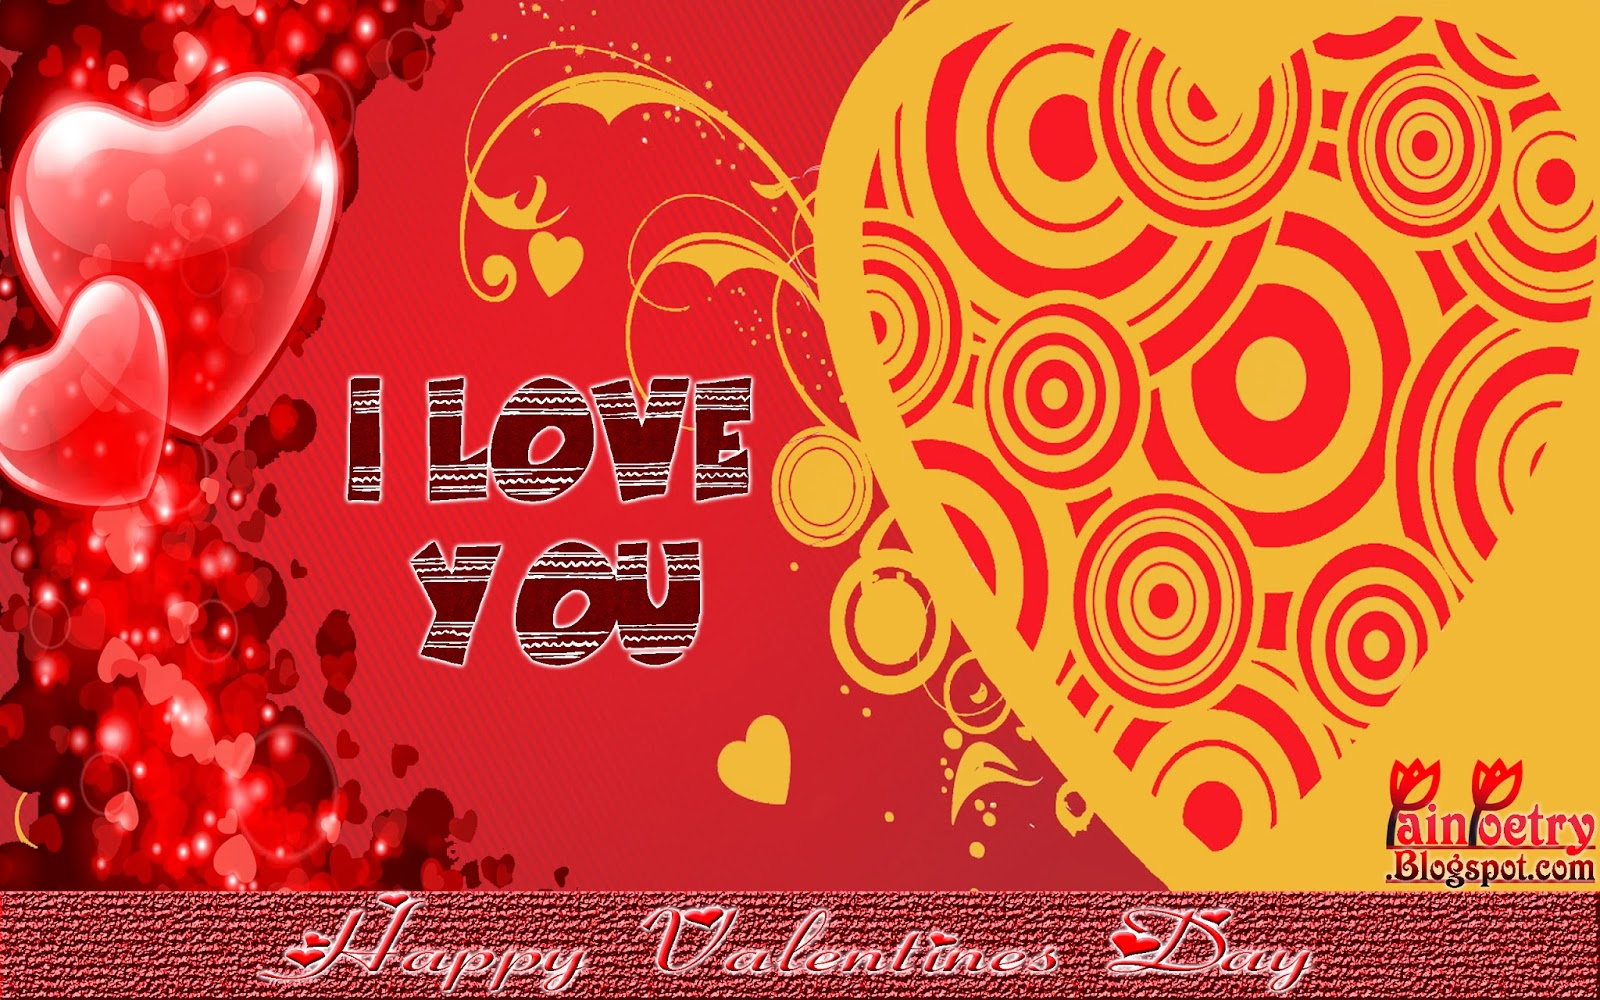 Happy-Walentines-Day-Wishes-Image-HD-Wide